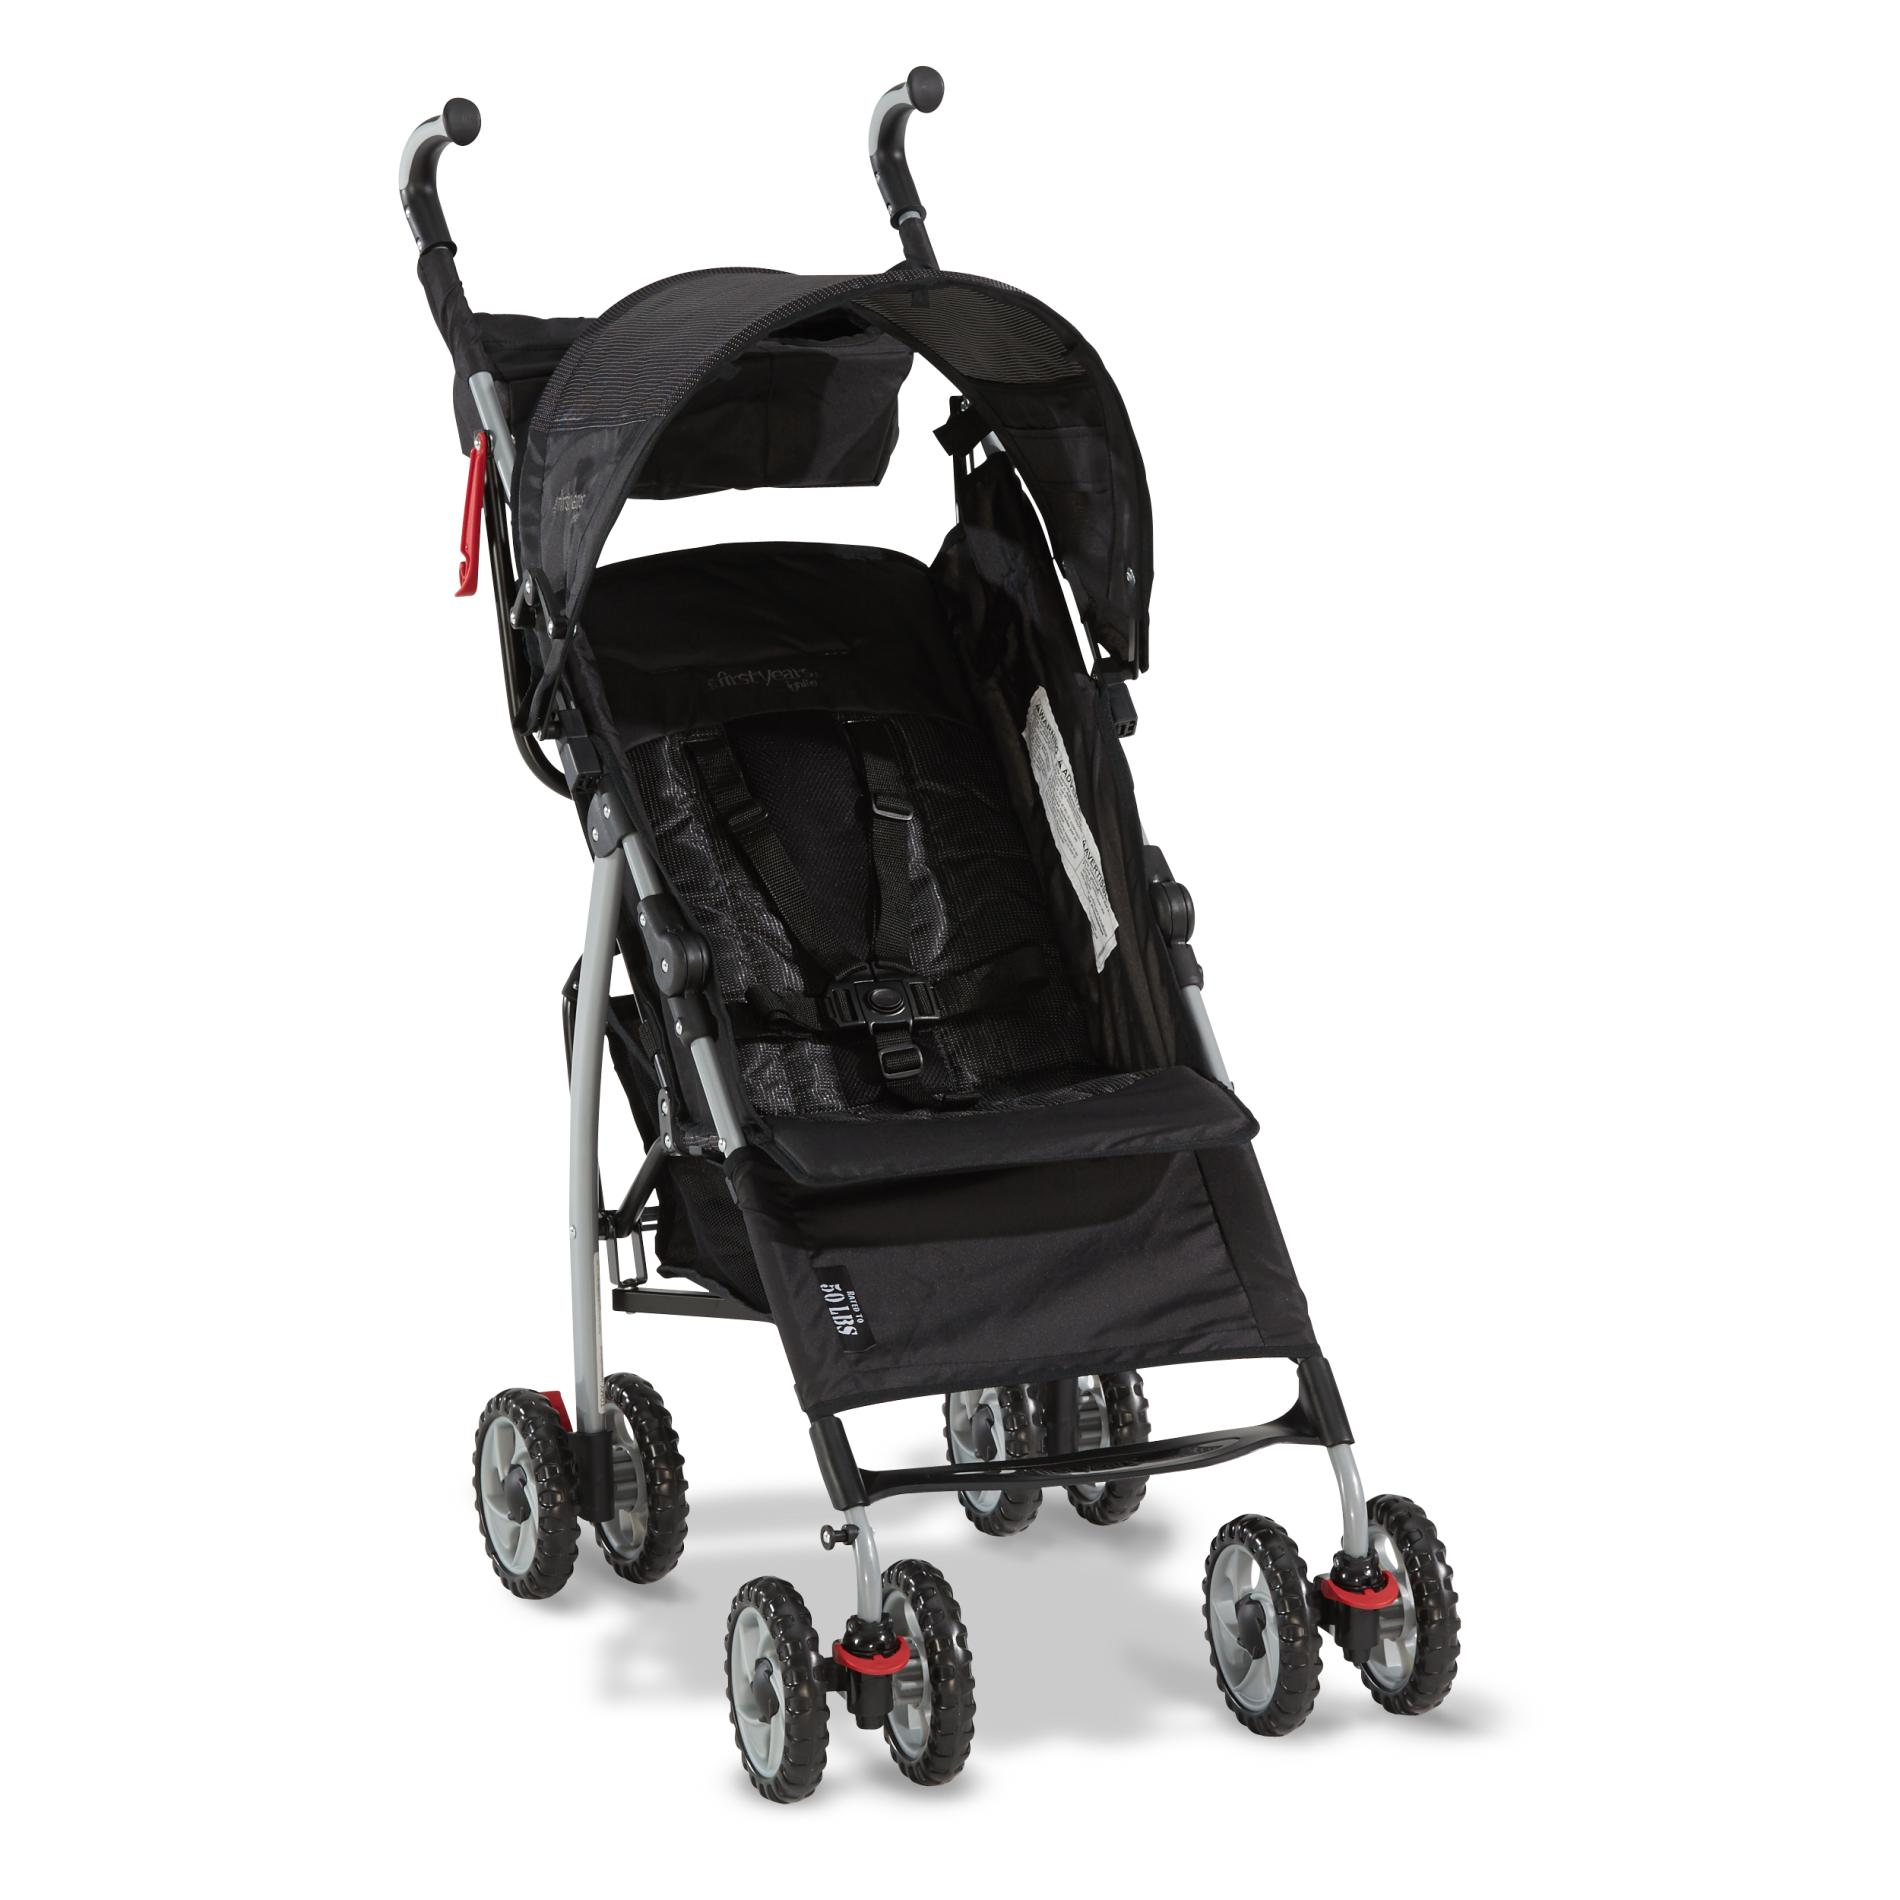 Umbrella Stroller First Years Baby Jogger Coupons Furniture Stores In Md